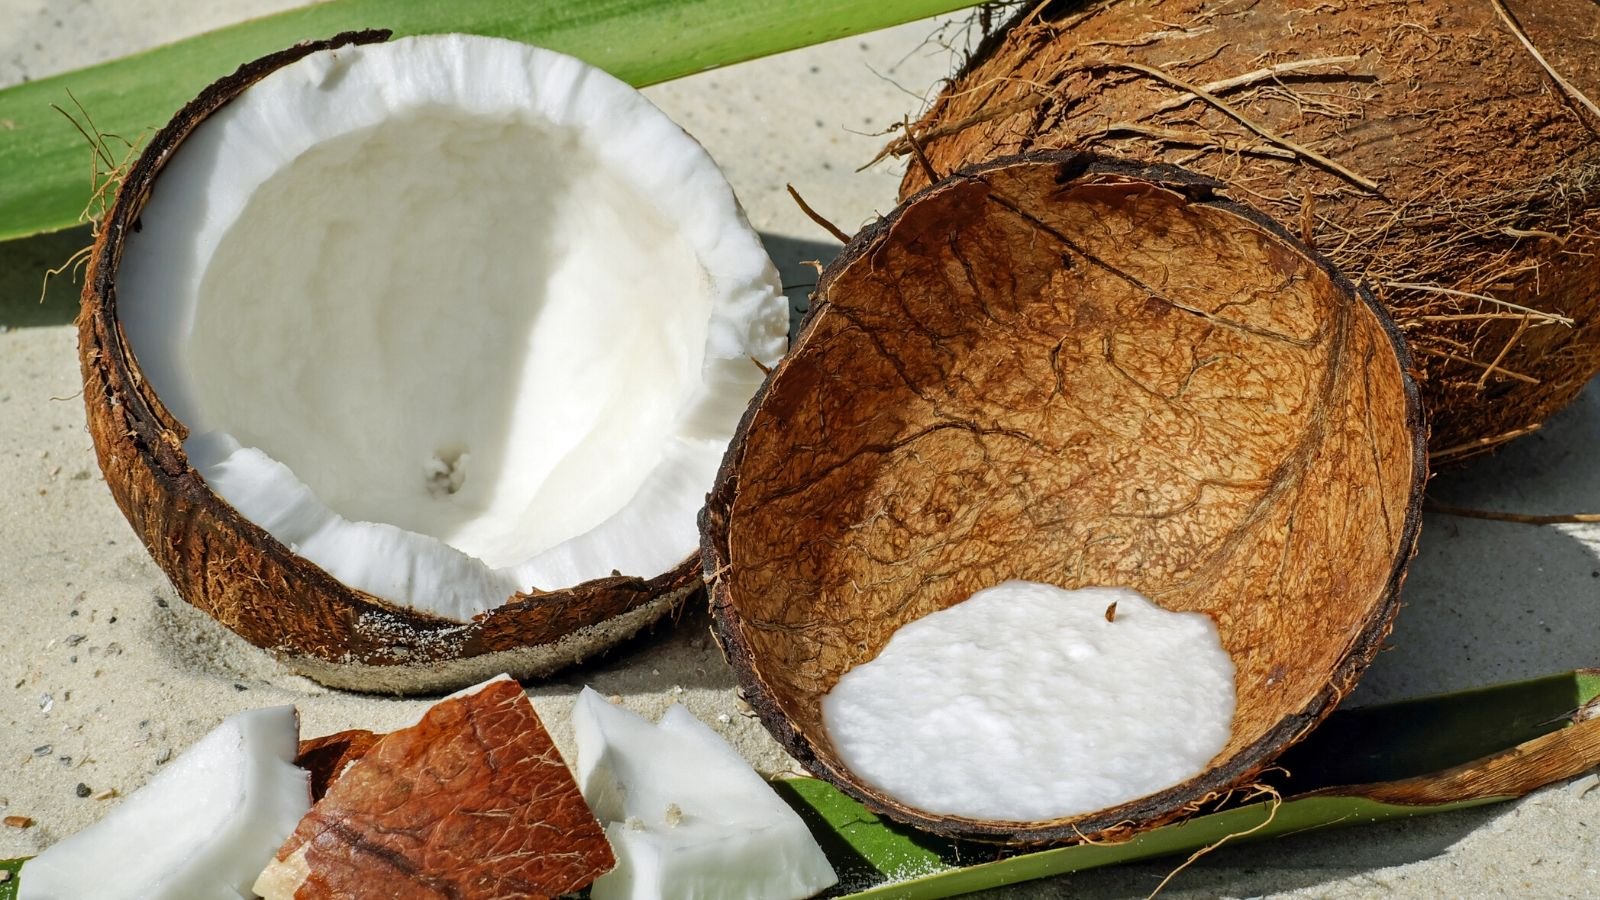 Why Should You Not Use Coconut Oil On Your Face?